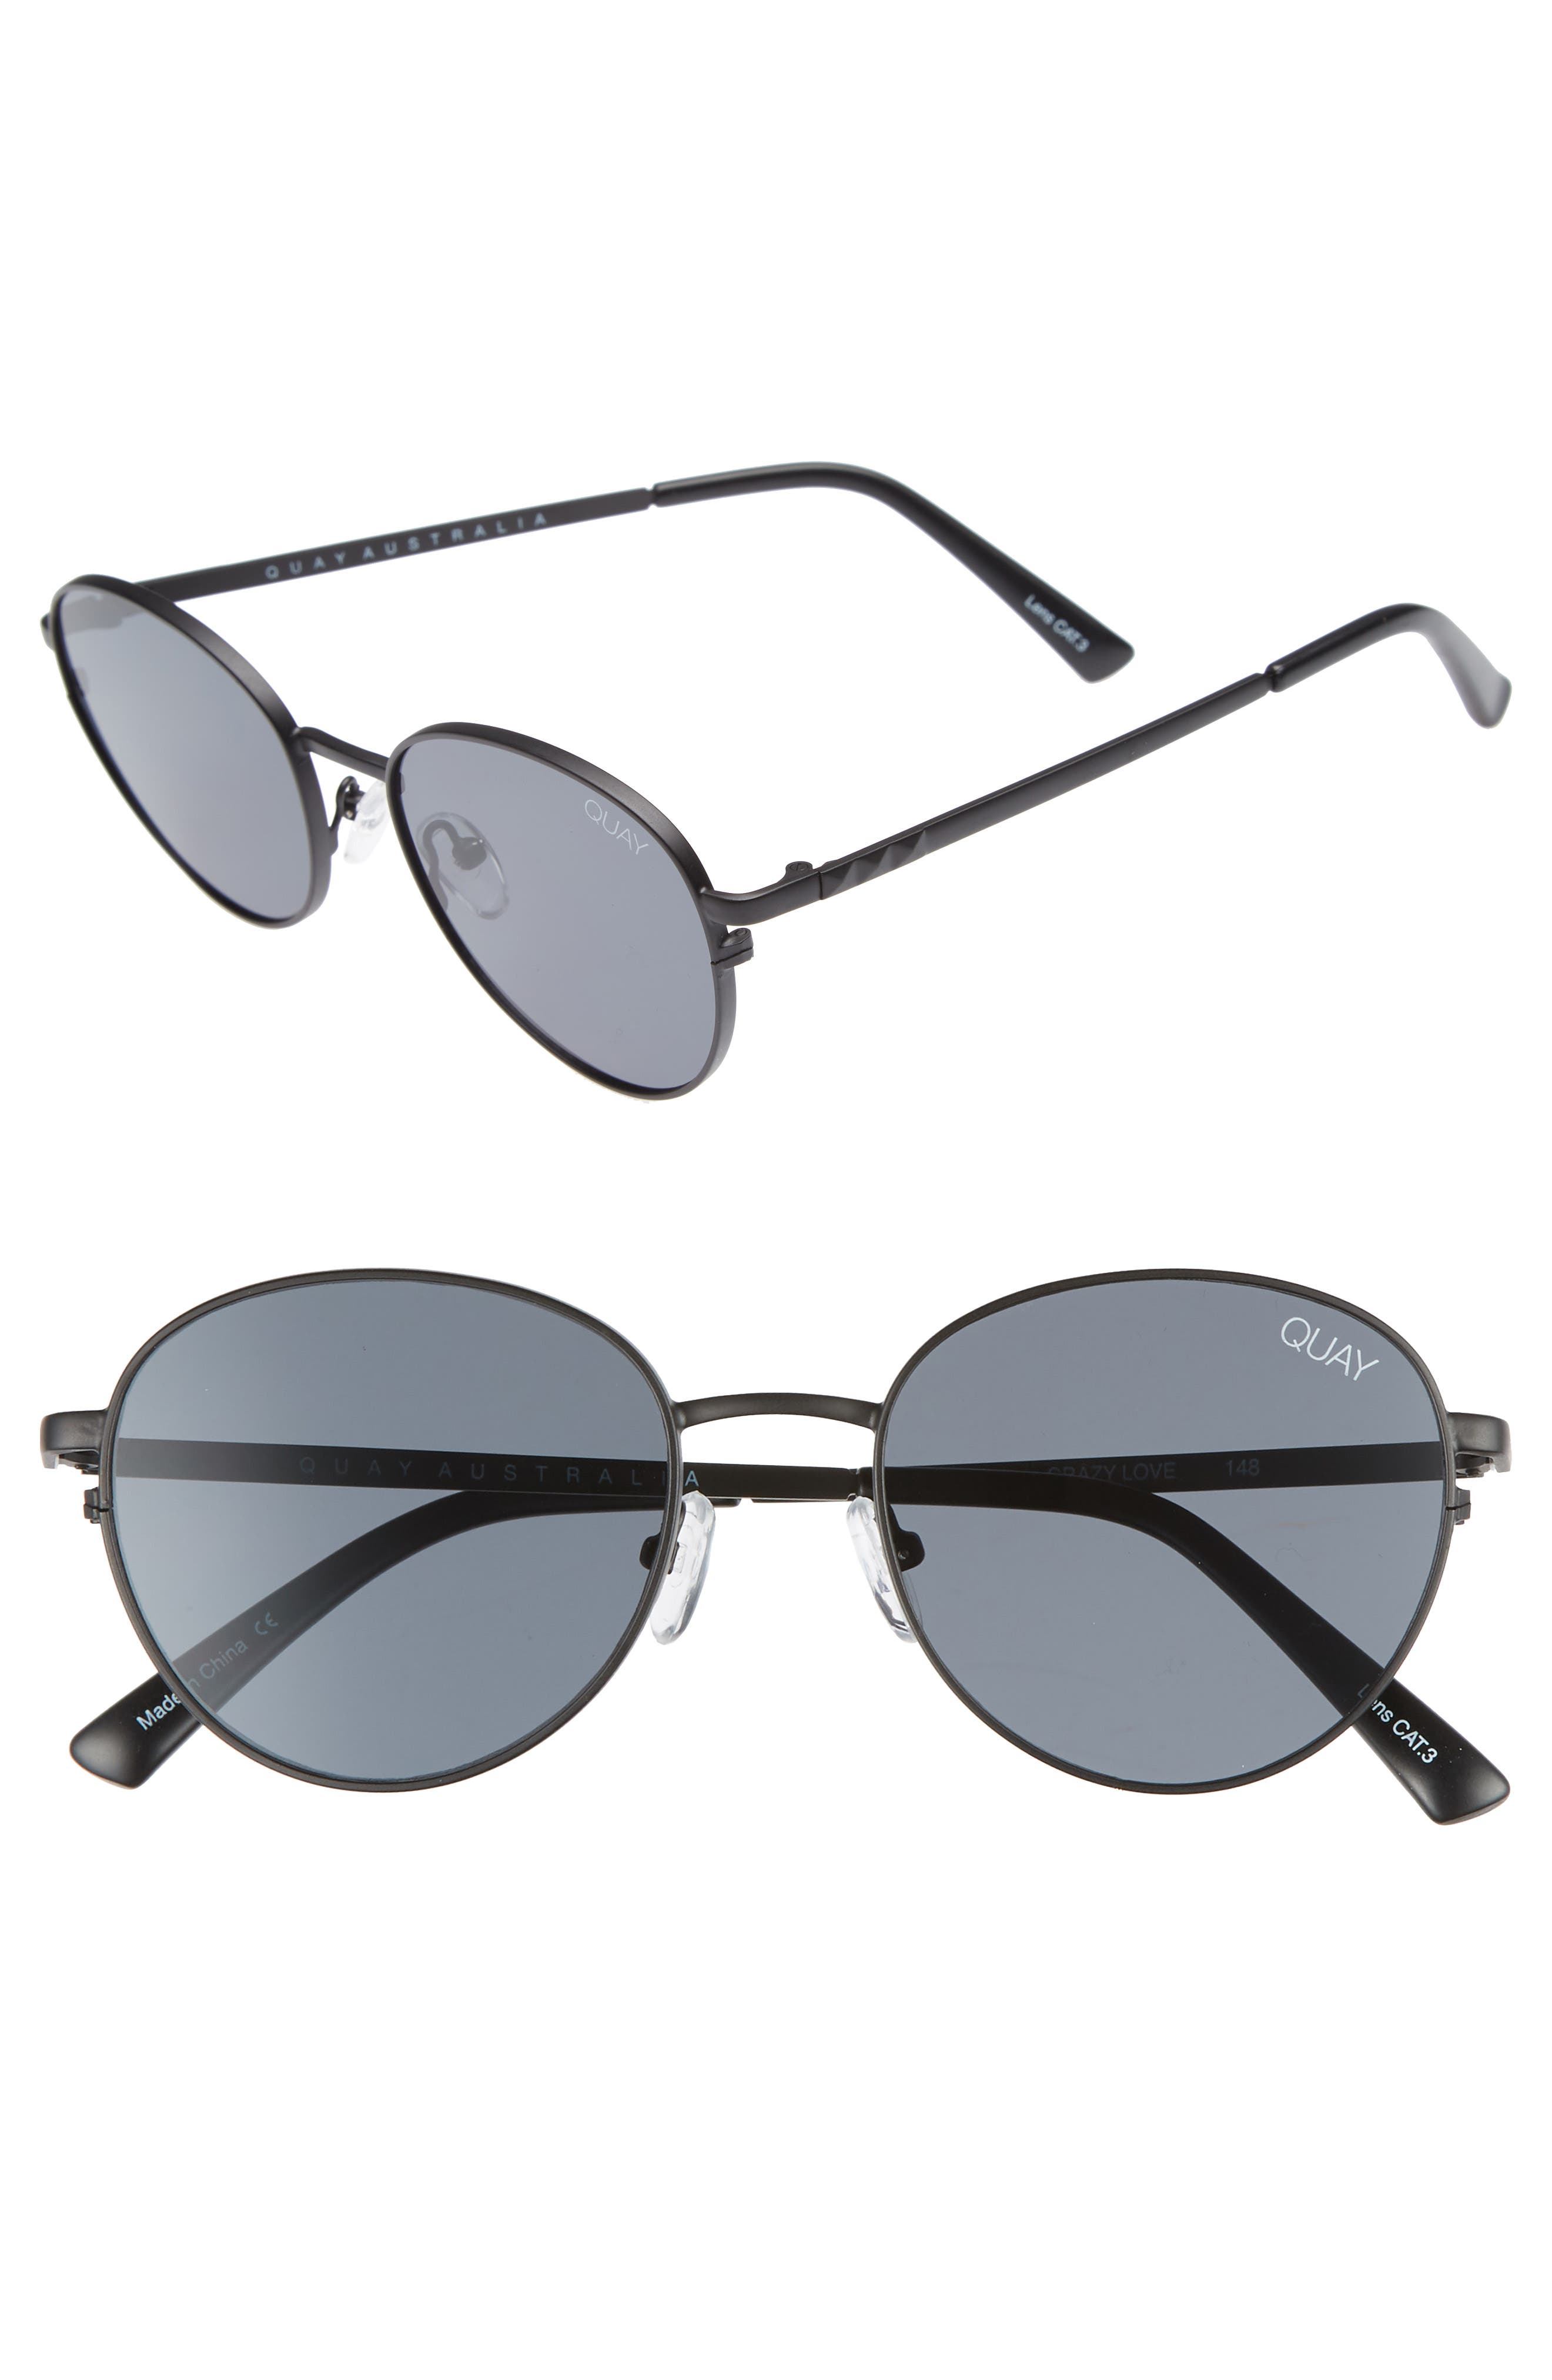 Crazy Love 45mm Round Sunglasses,                             Main thumbnail 1, color,                             BLACK/ SMOKE